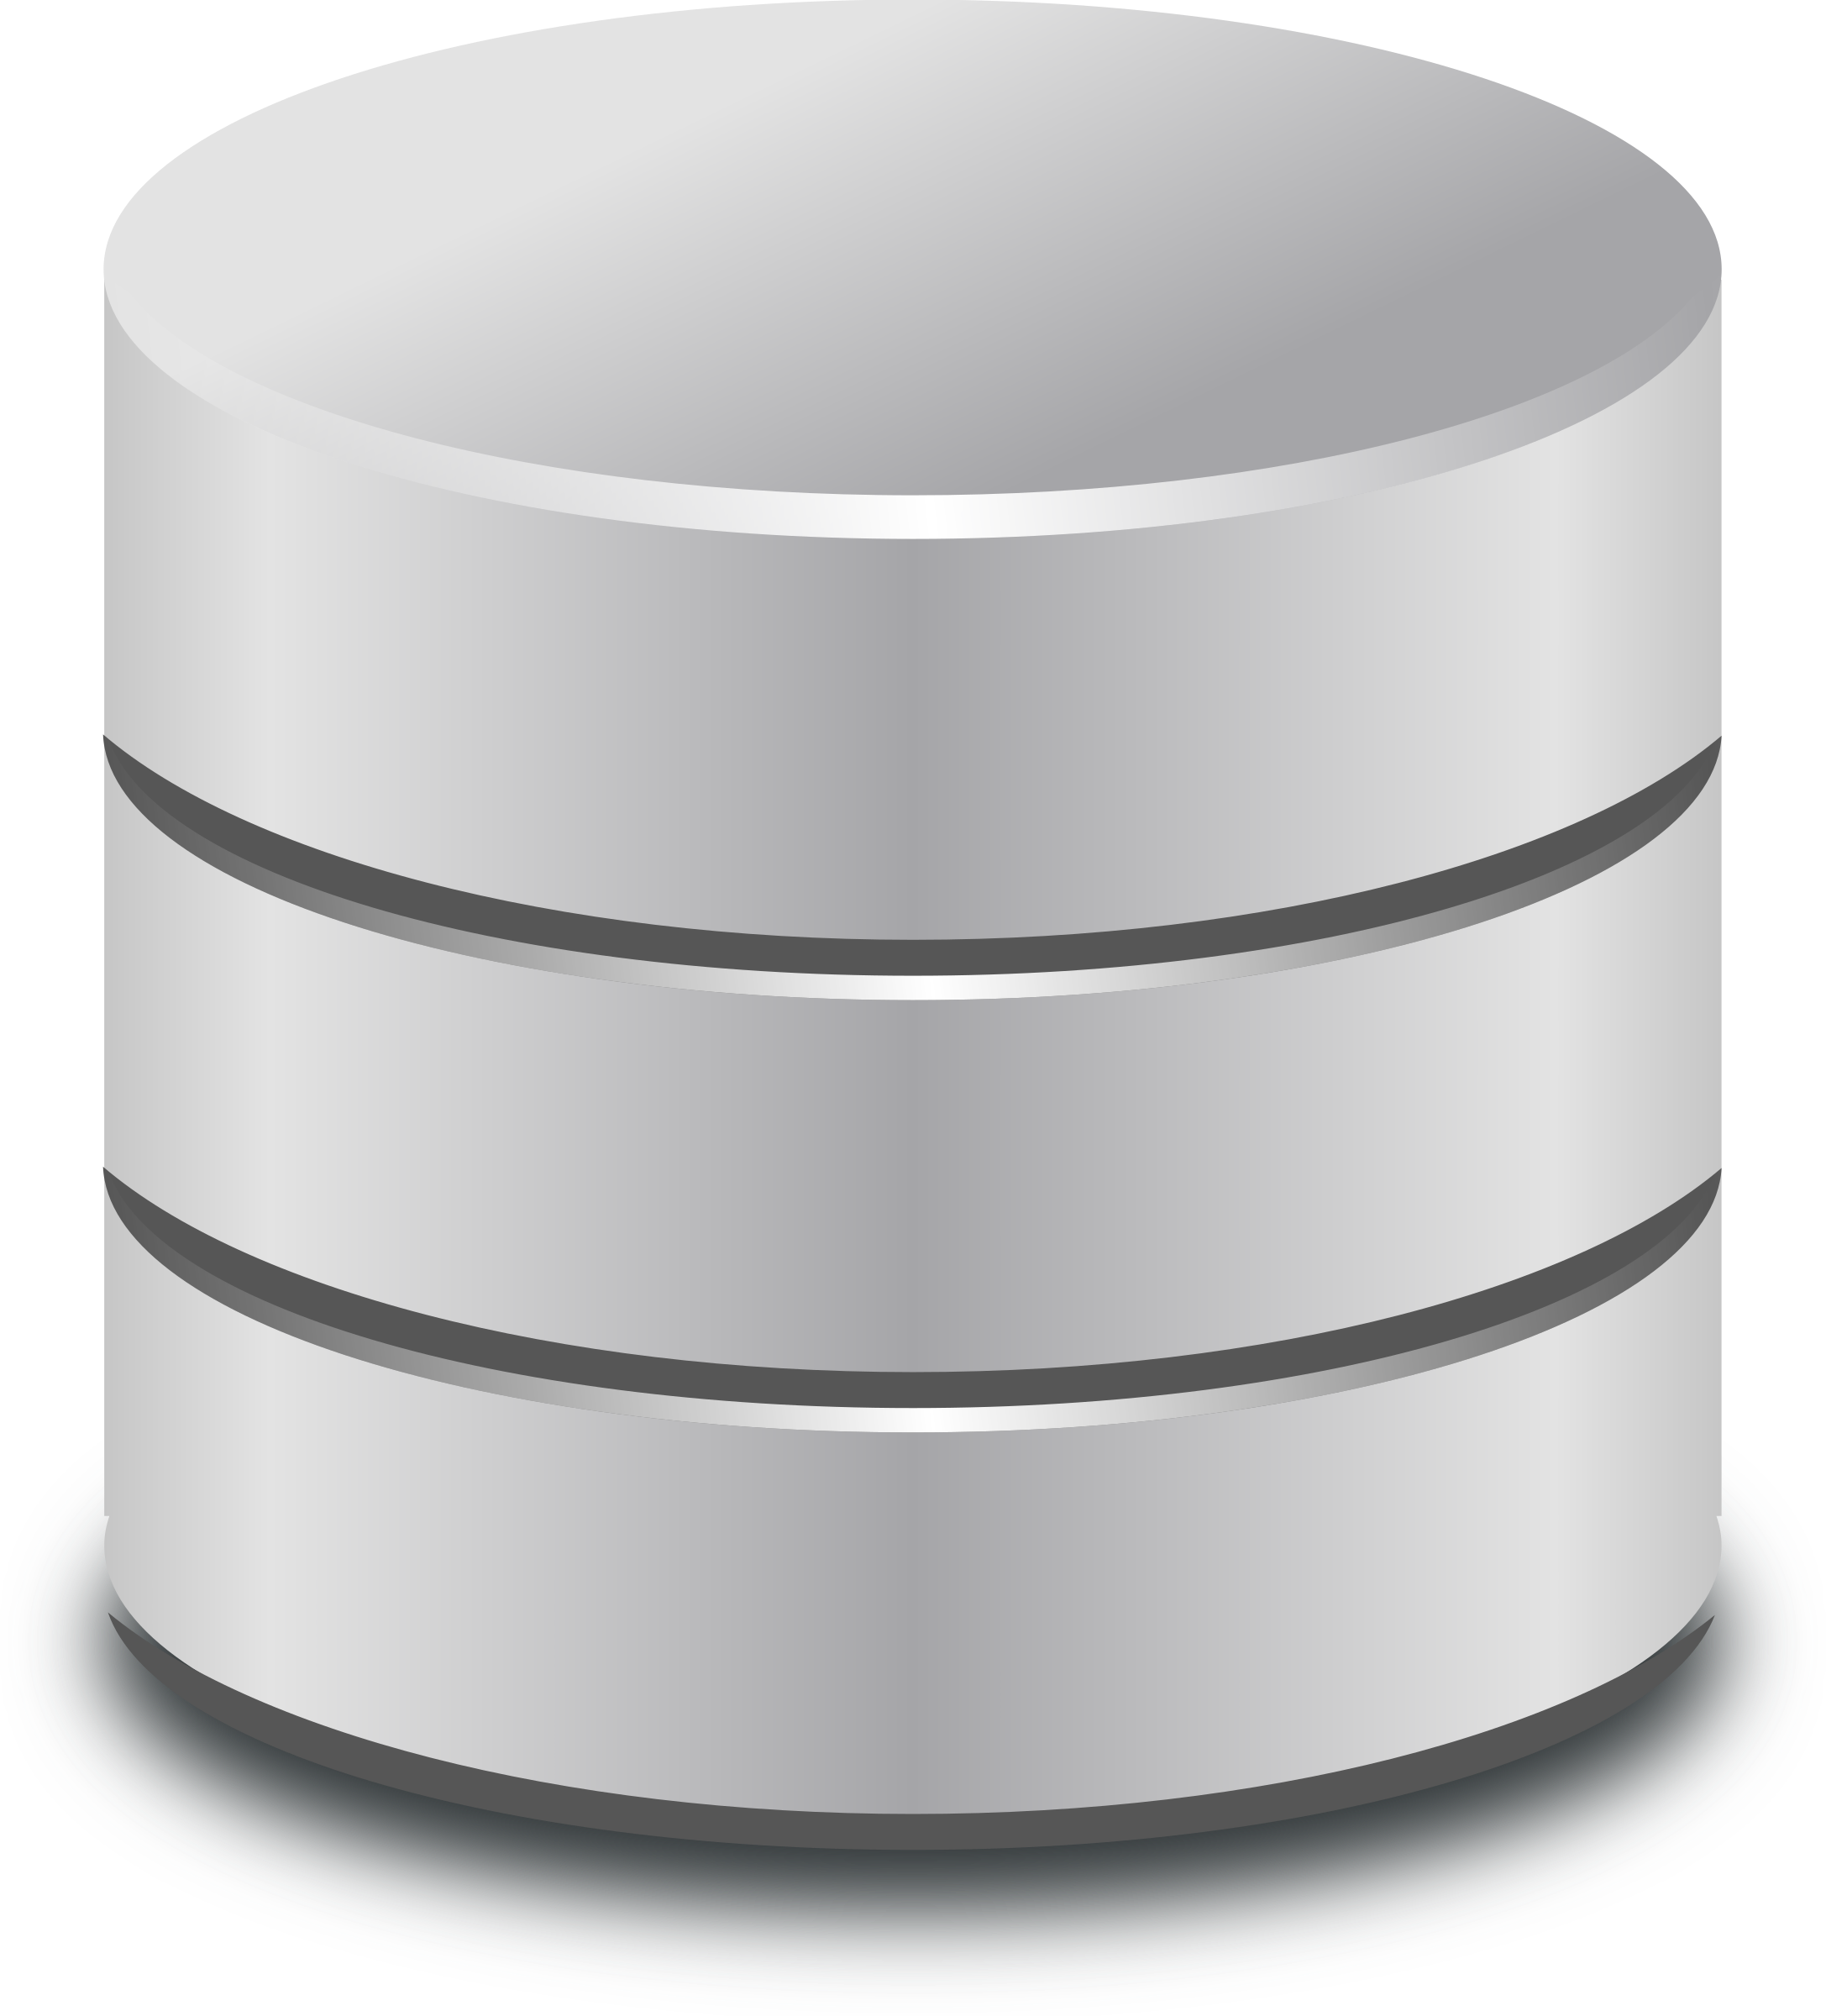 2174x2400 Database Symbol Vector Clipart Image